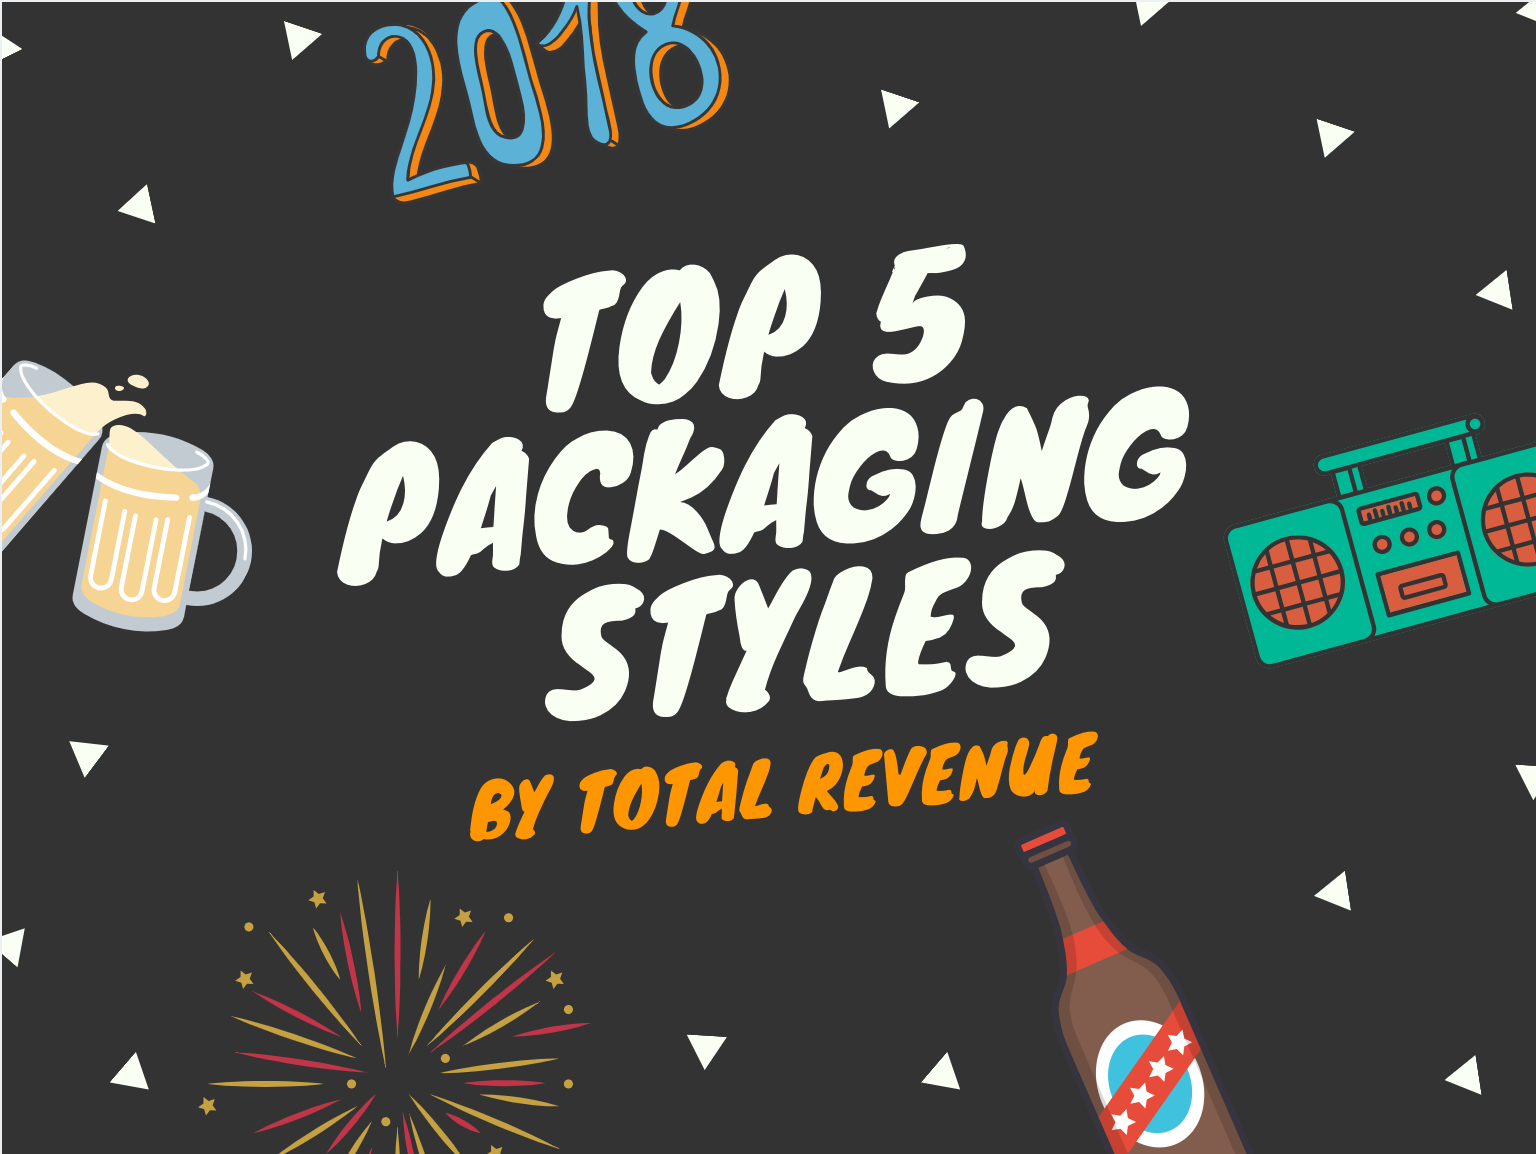 Top 5 Packaging Styles